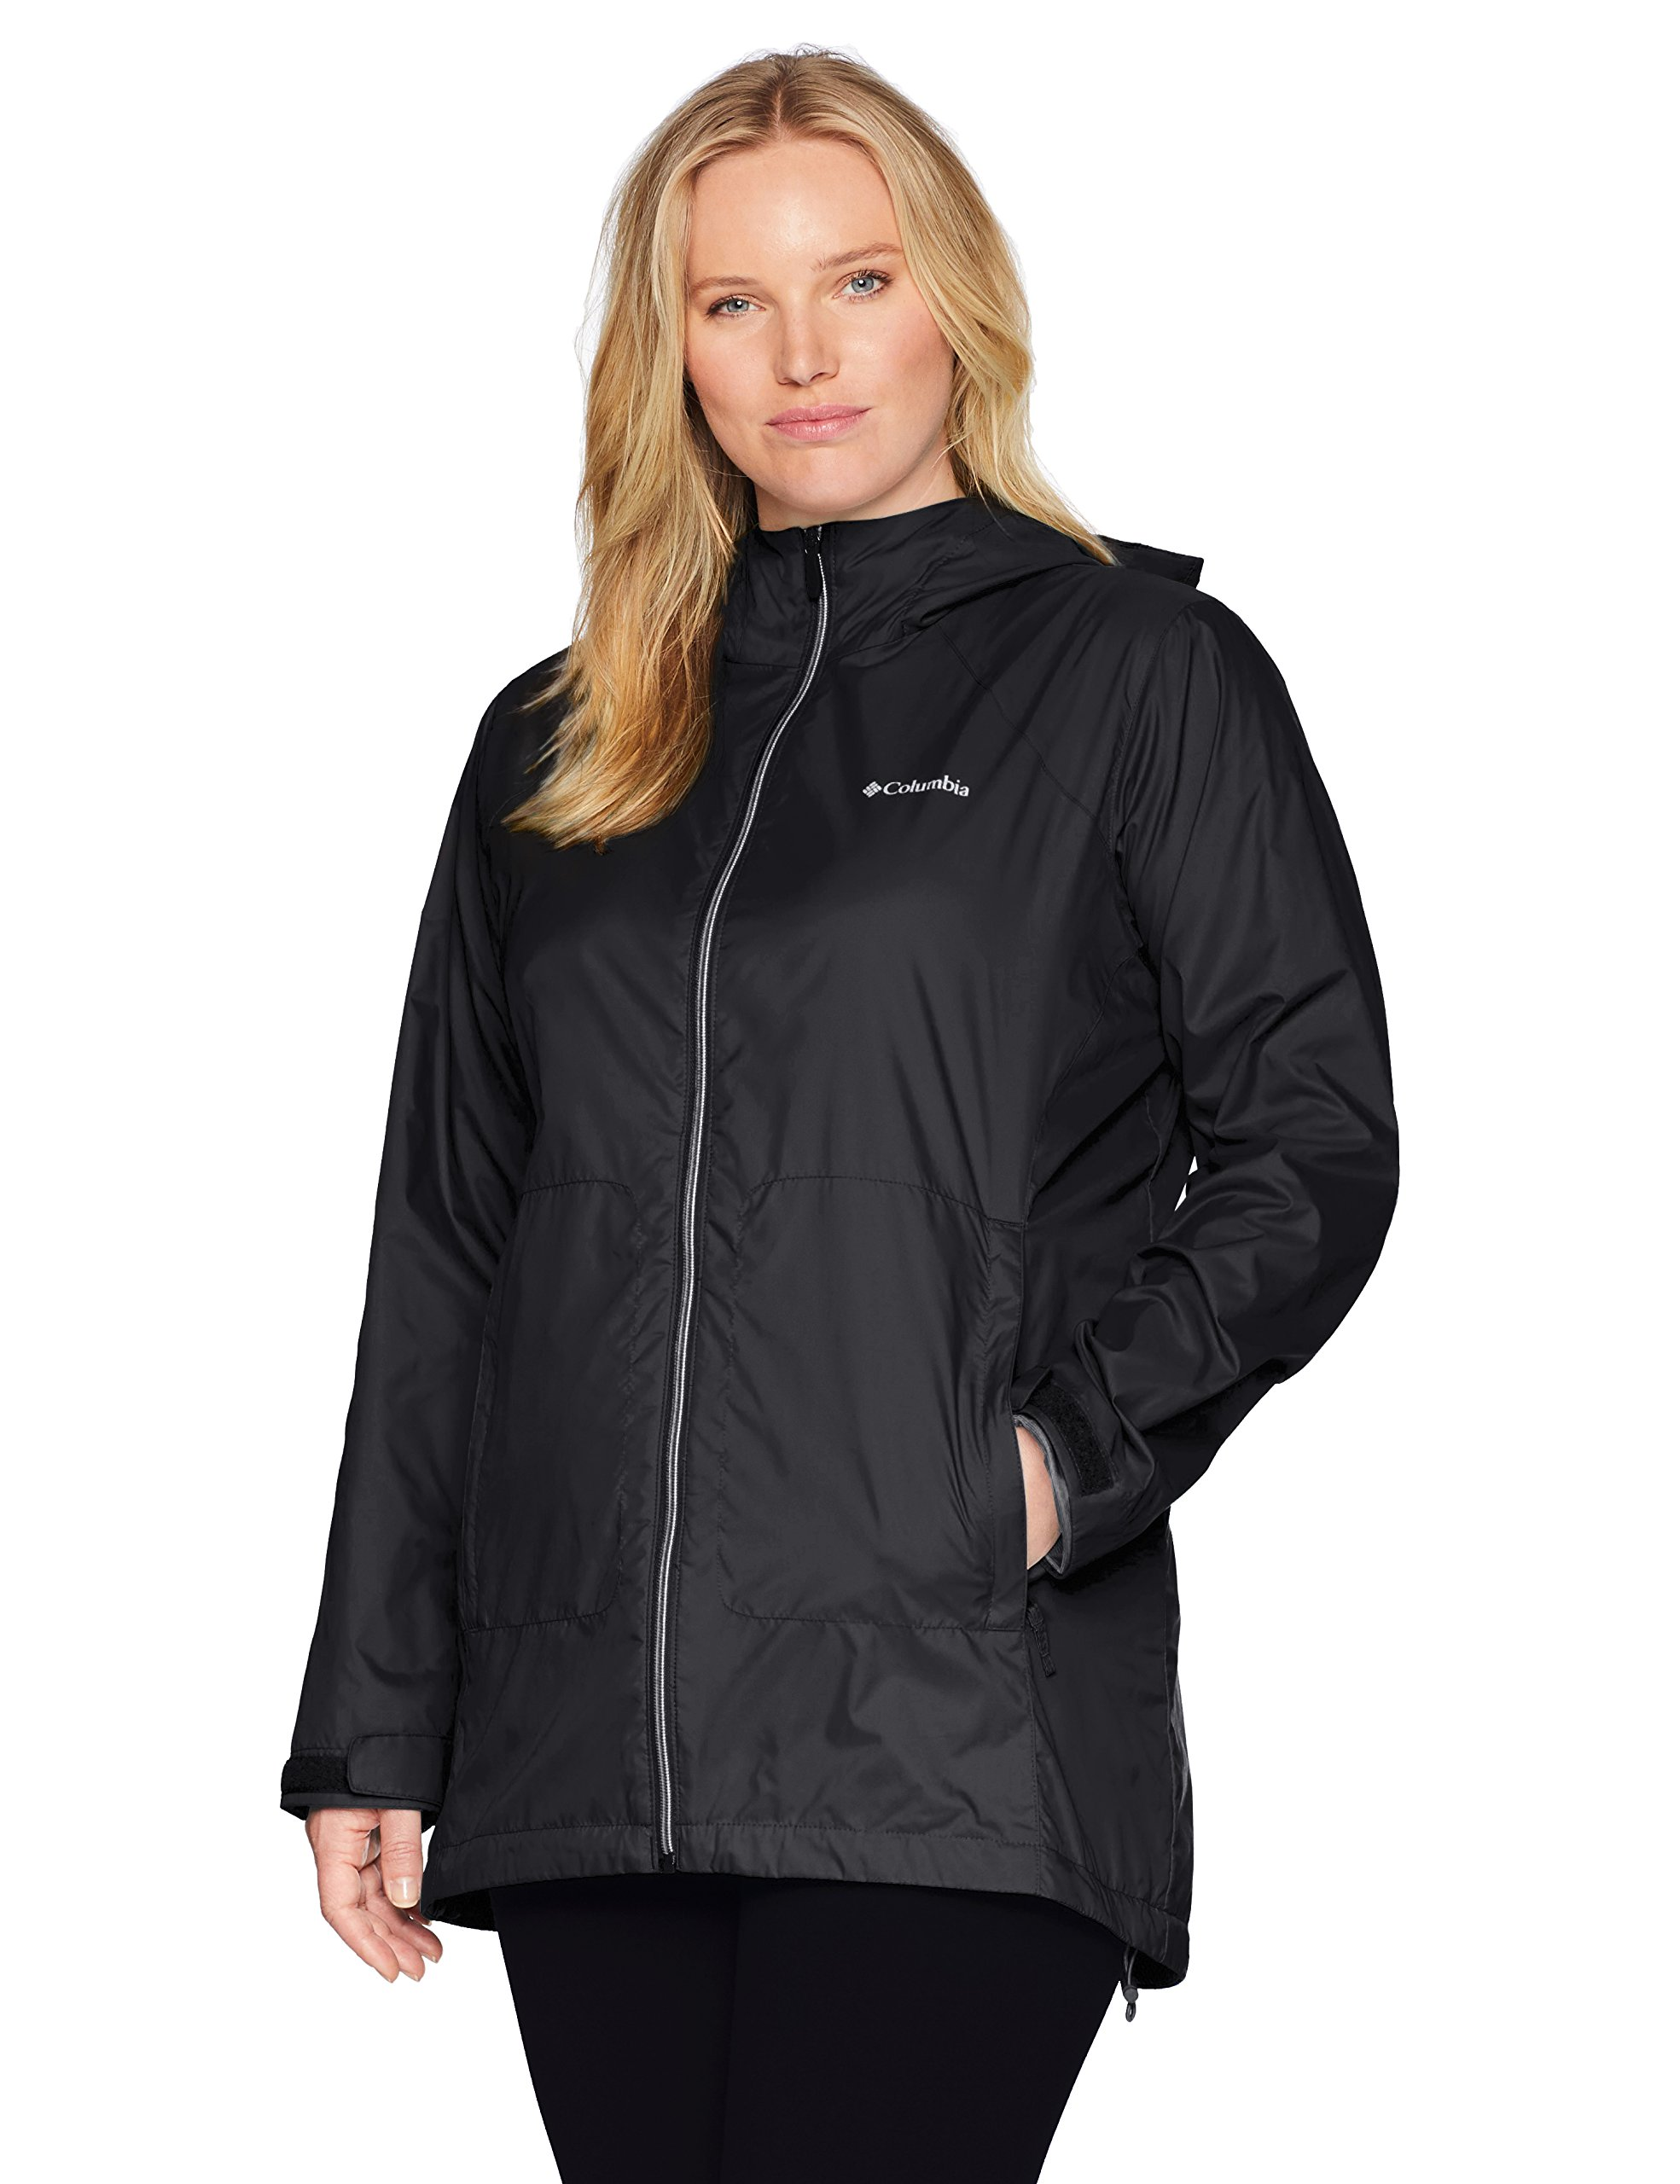 Columbia Women's Plus Size Switchback Lined Long Jacket, Black, 2X